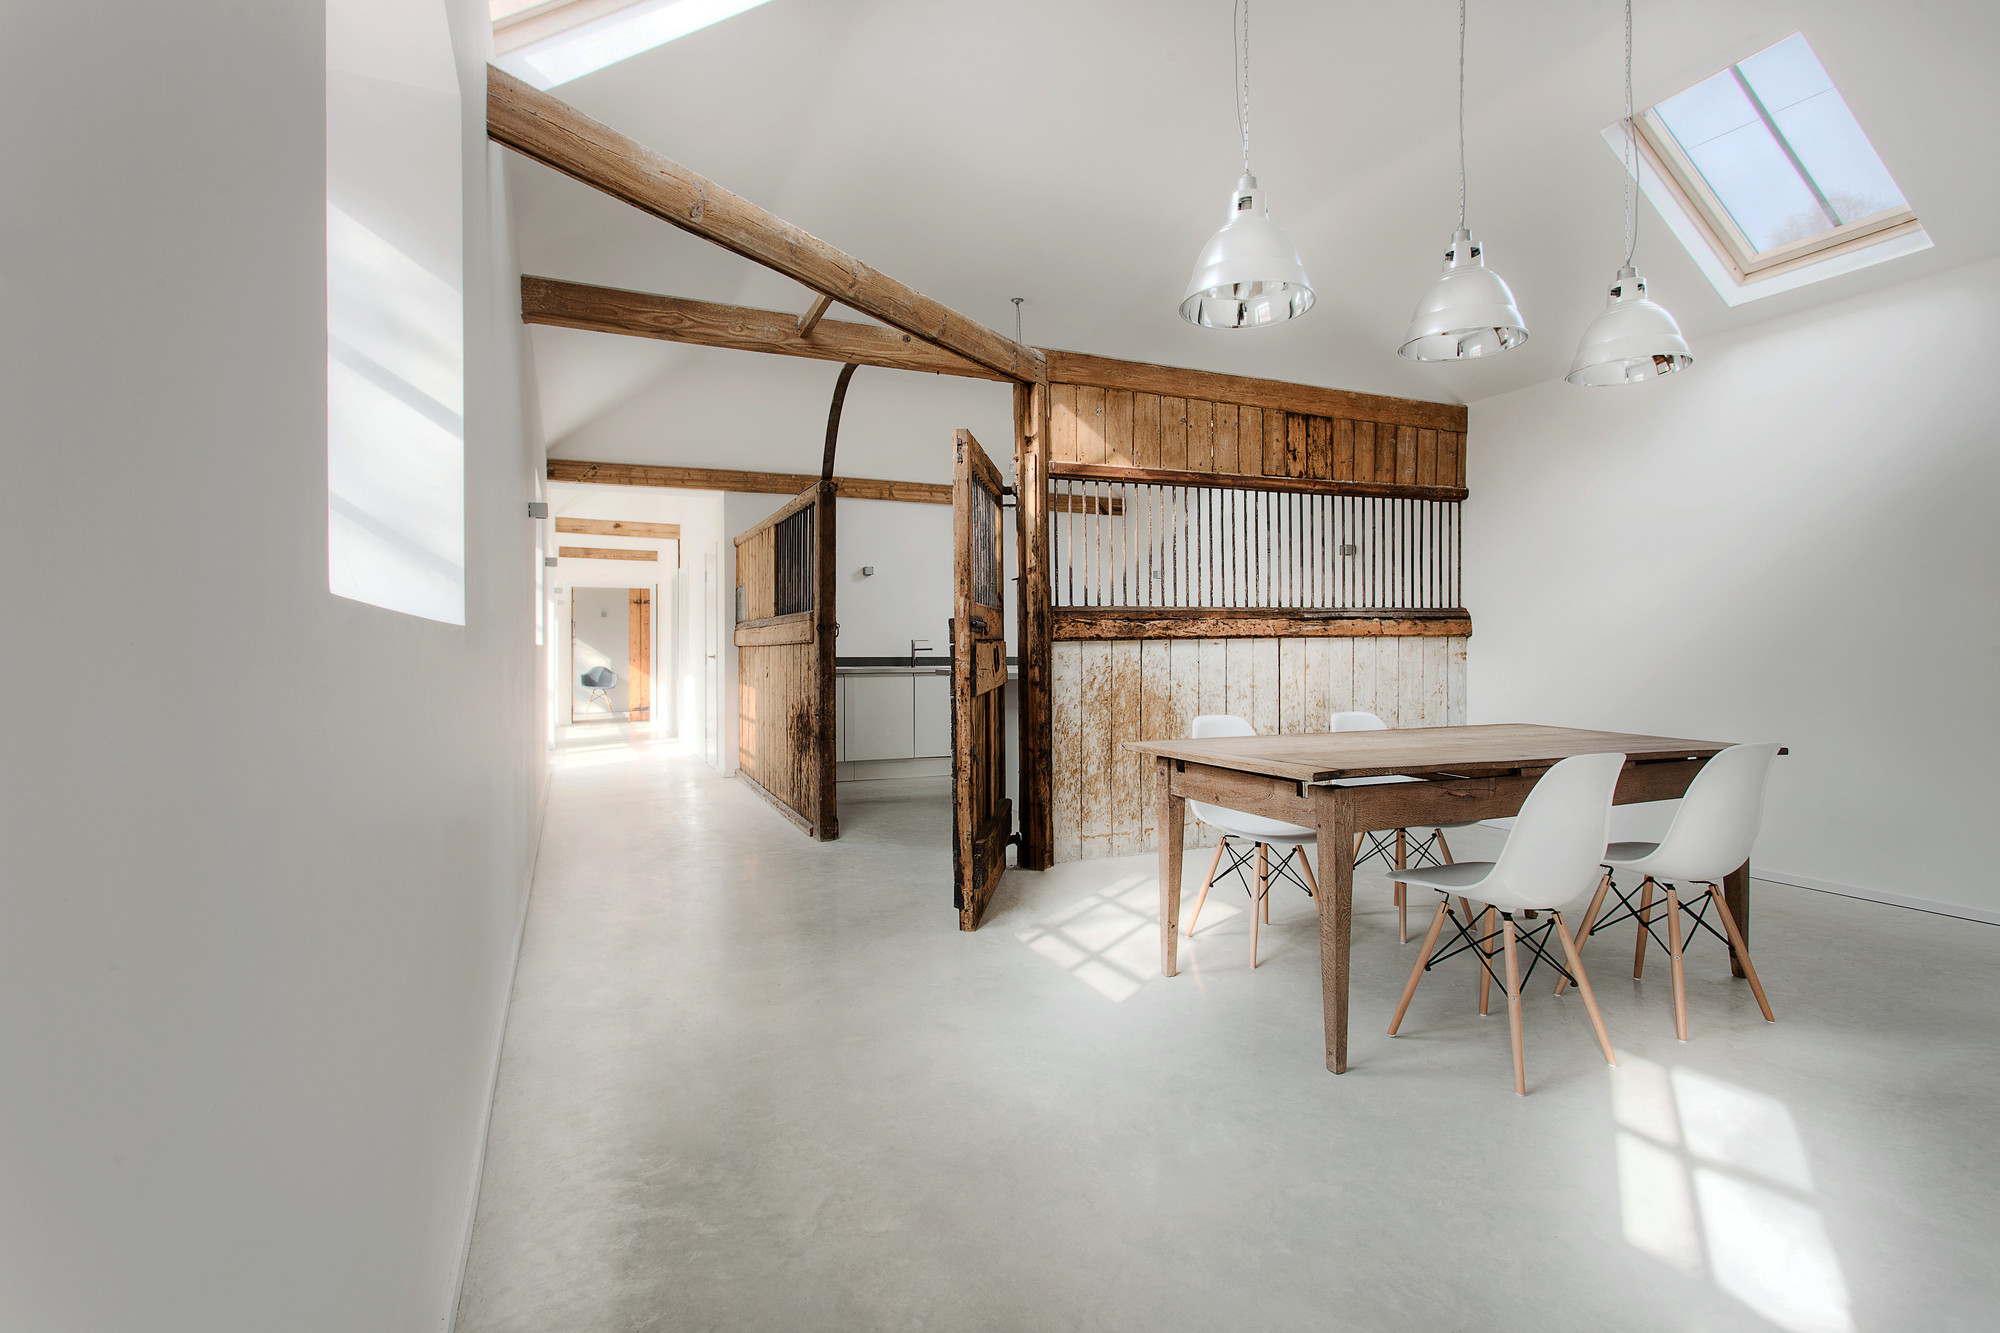 Manor House Stables / AR Design Studio, © Martin Gardner